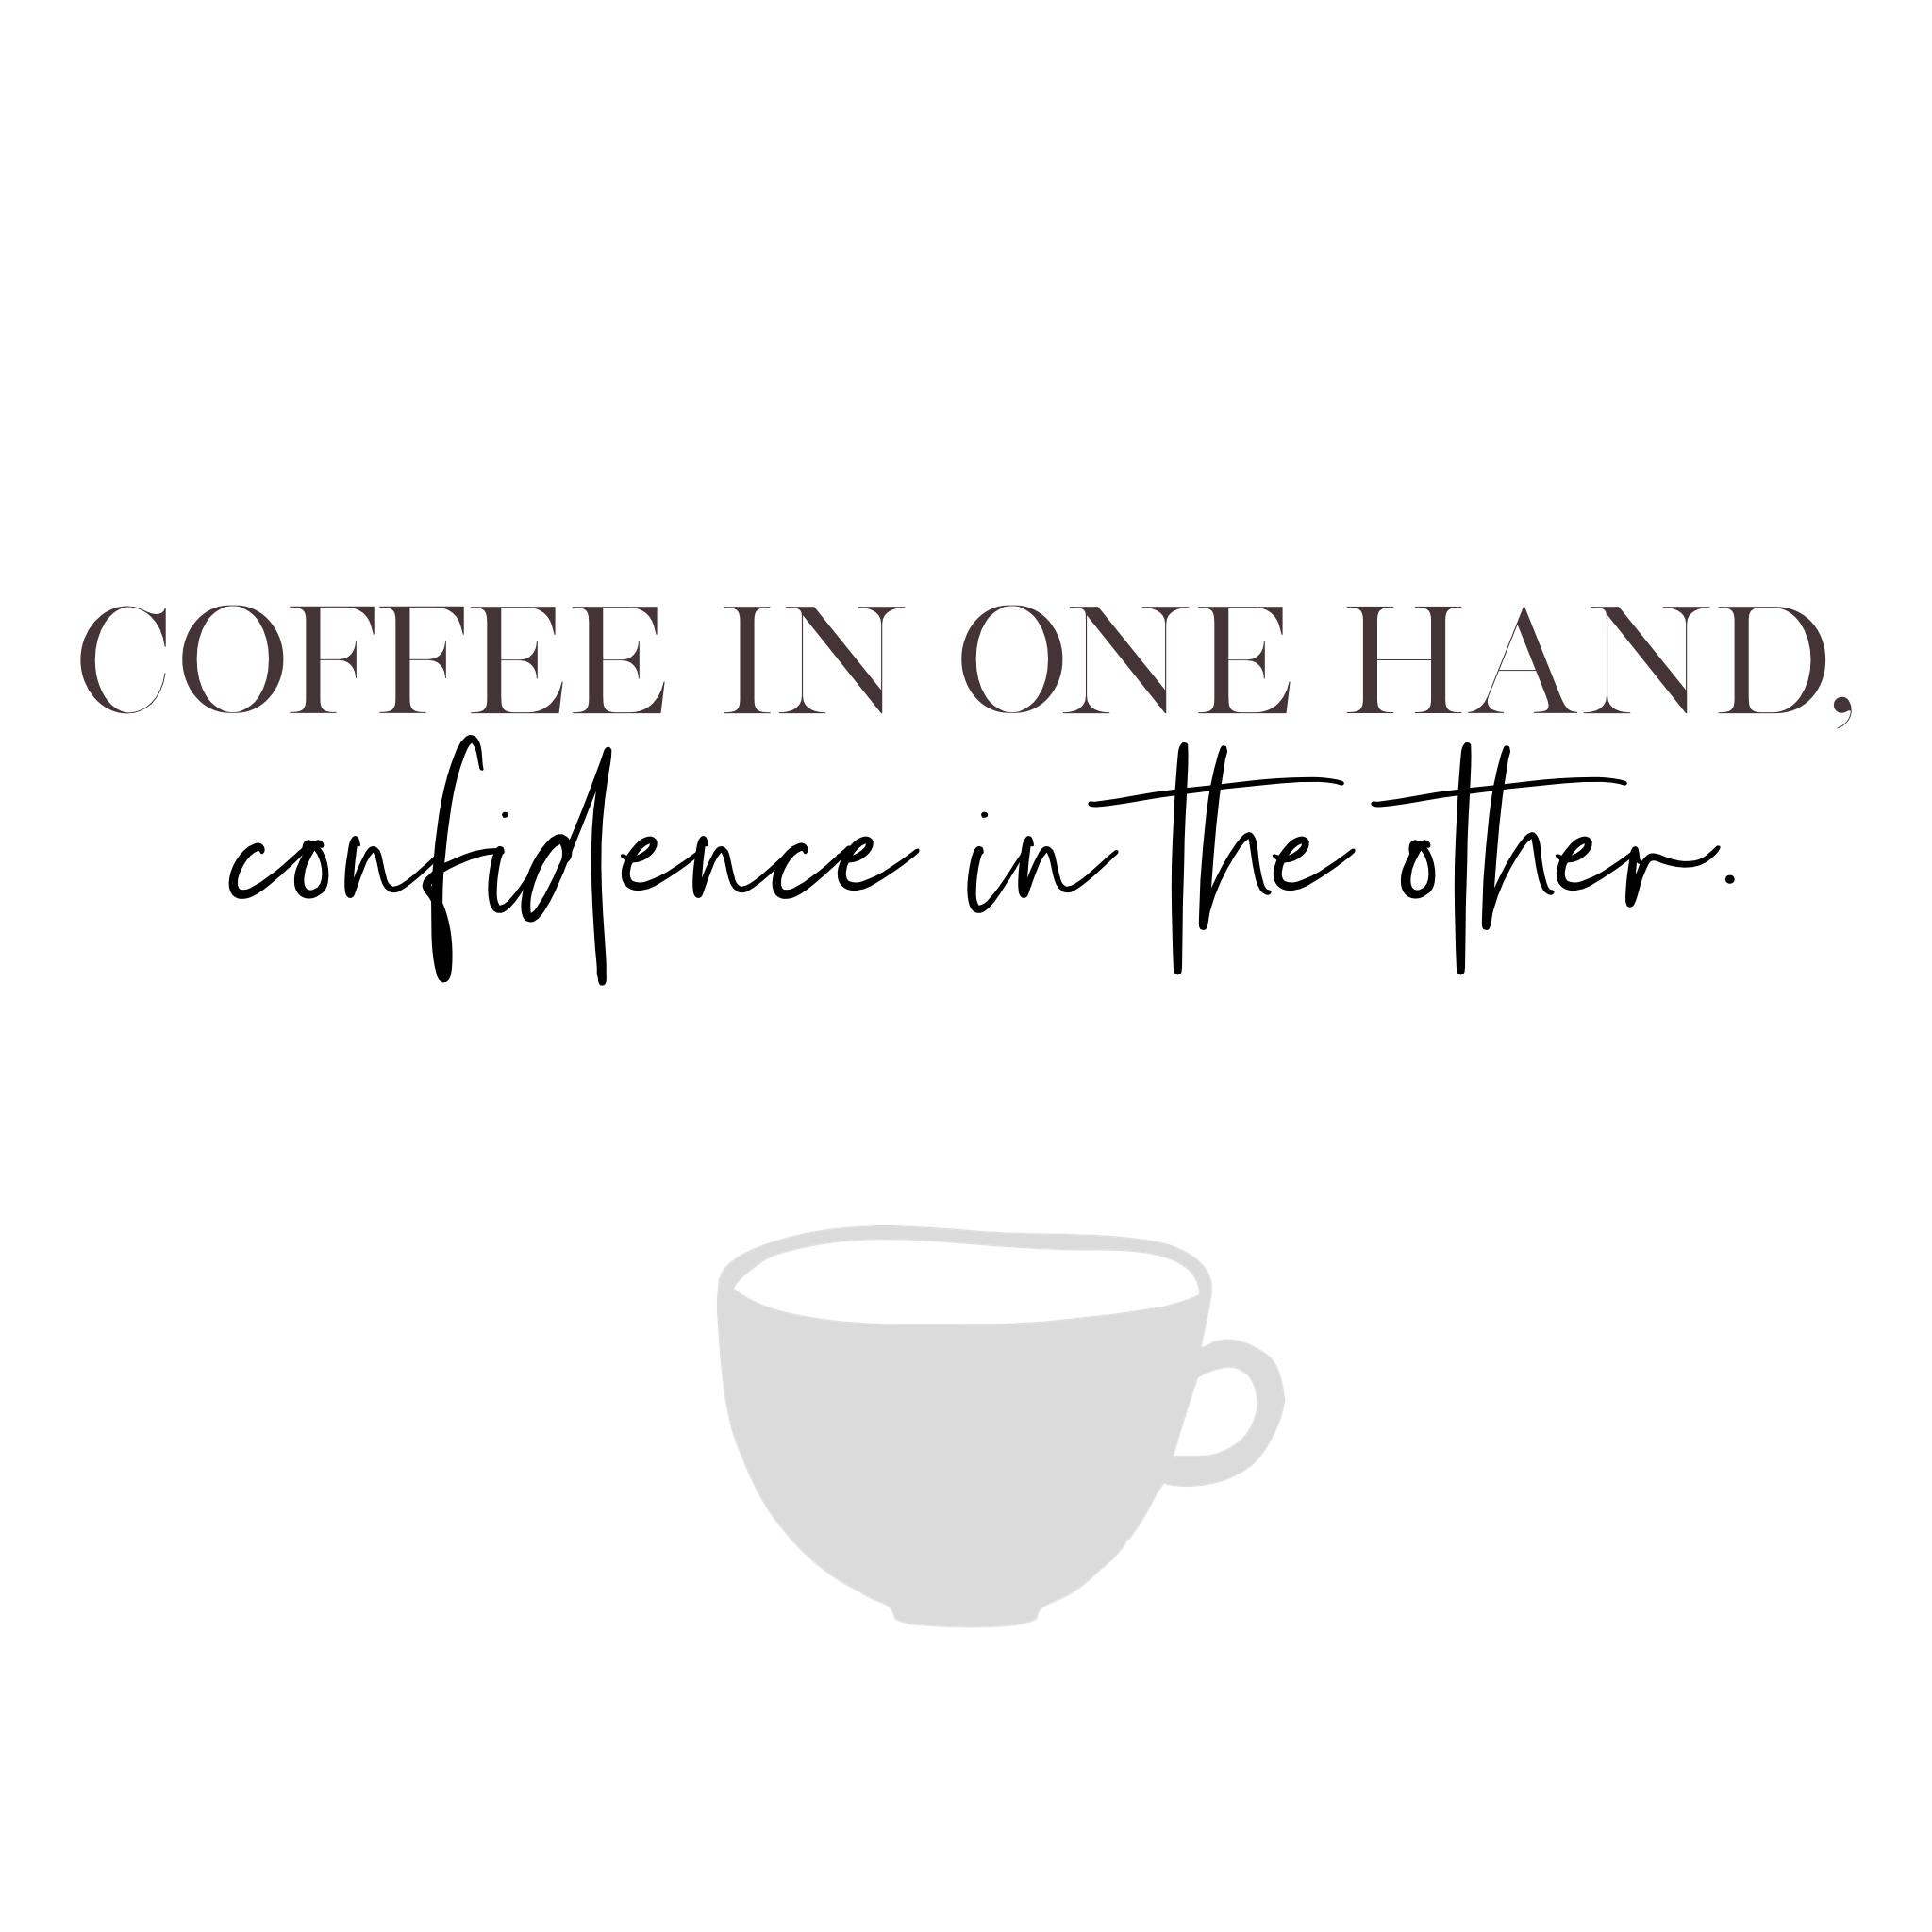 coffee and confidence.PNG